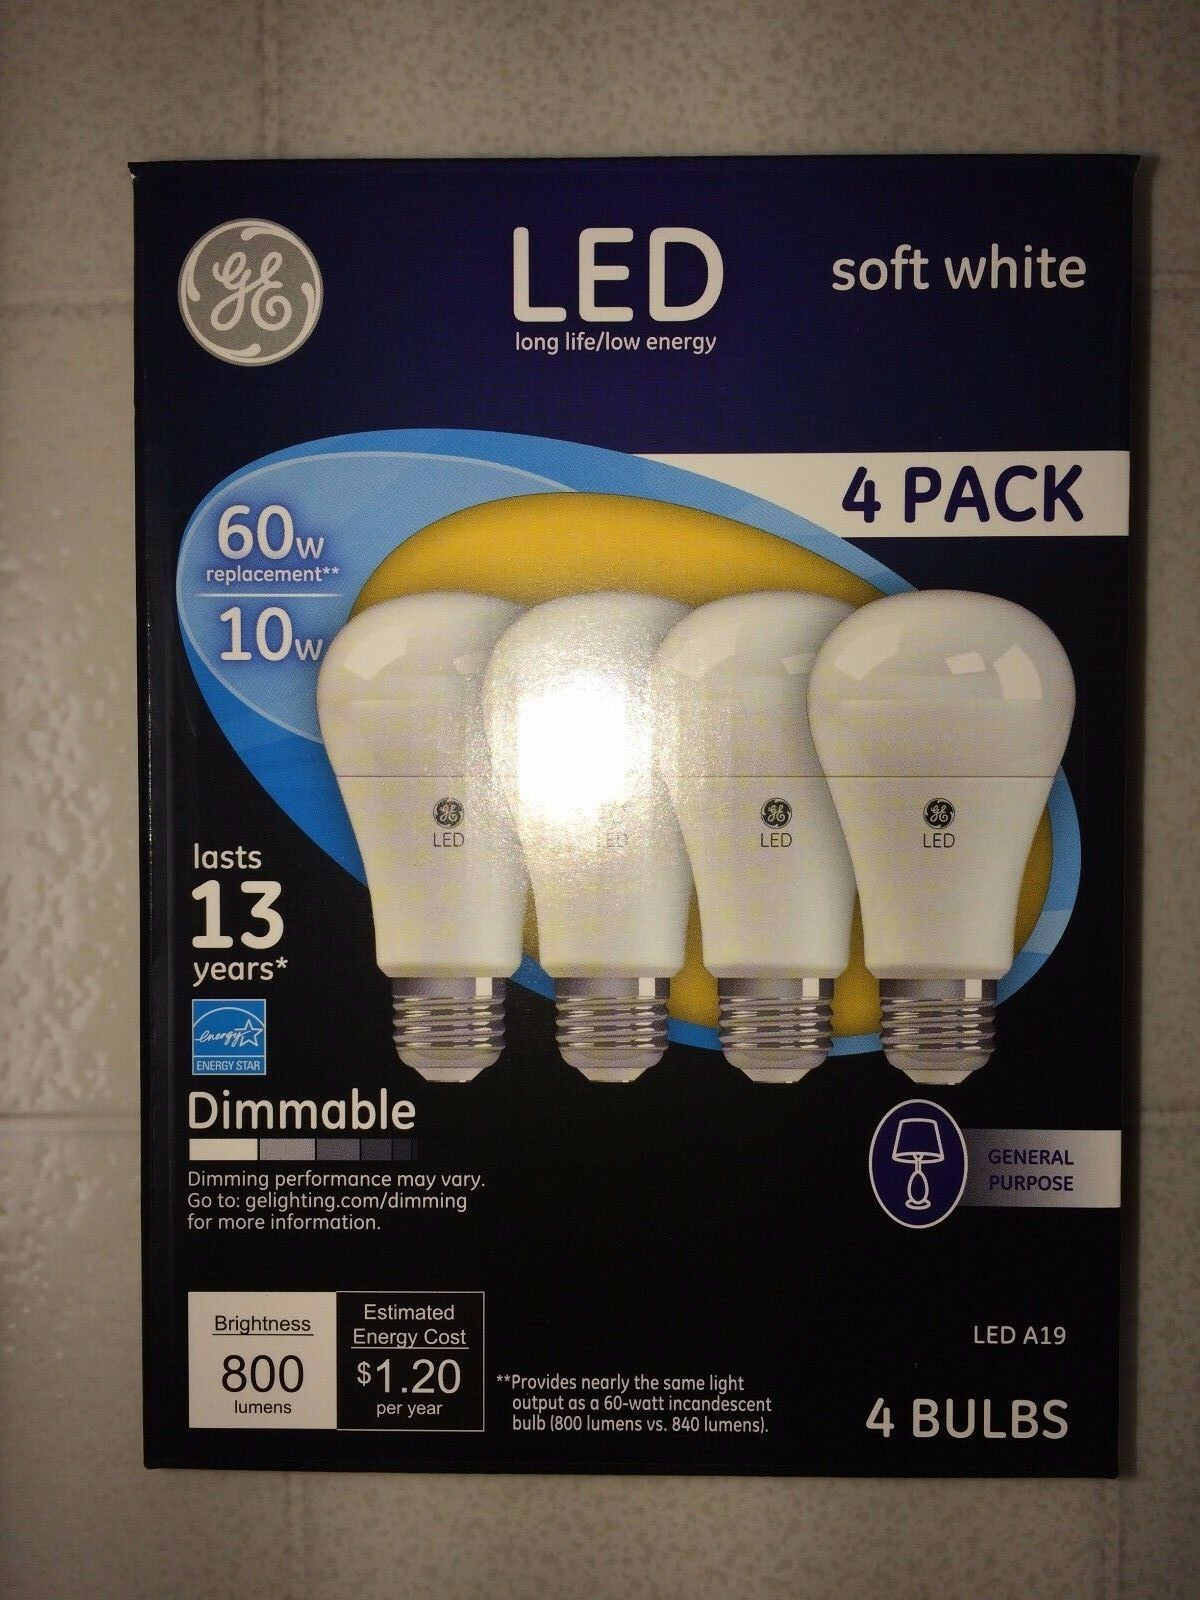 4 PACK GE LED 60W = 10W Soft White Dimmable 60 Watt